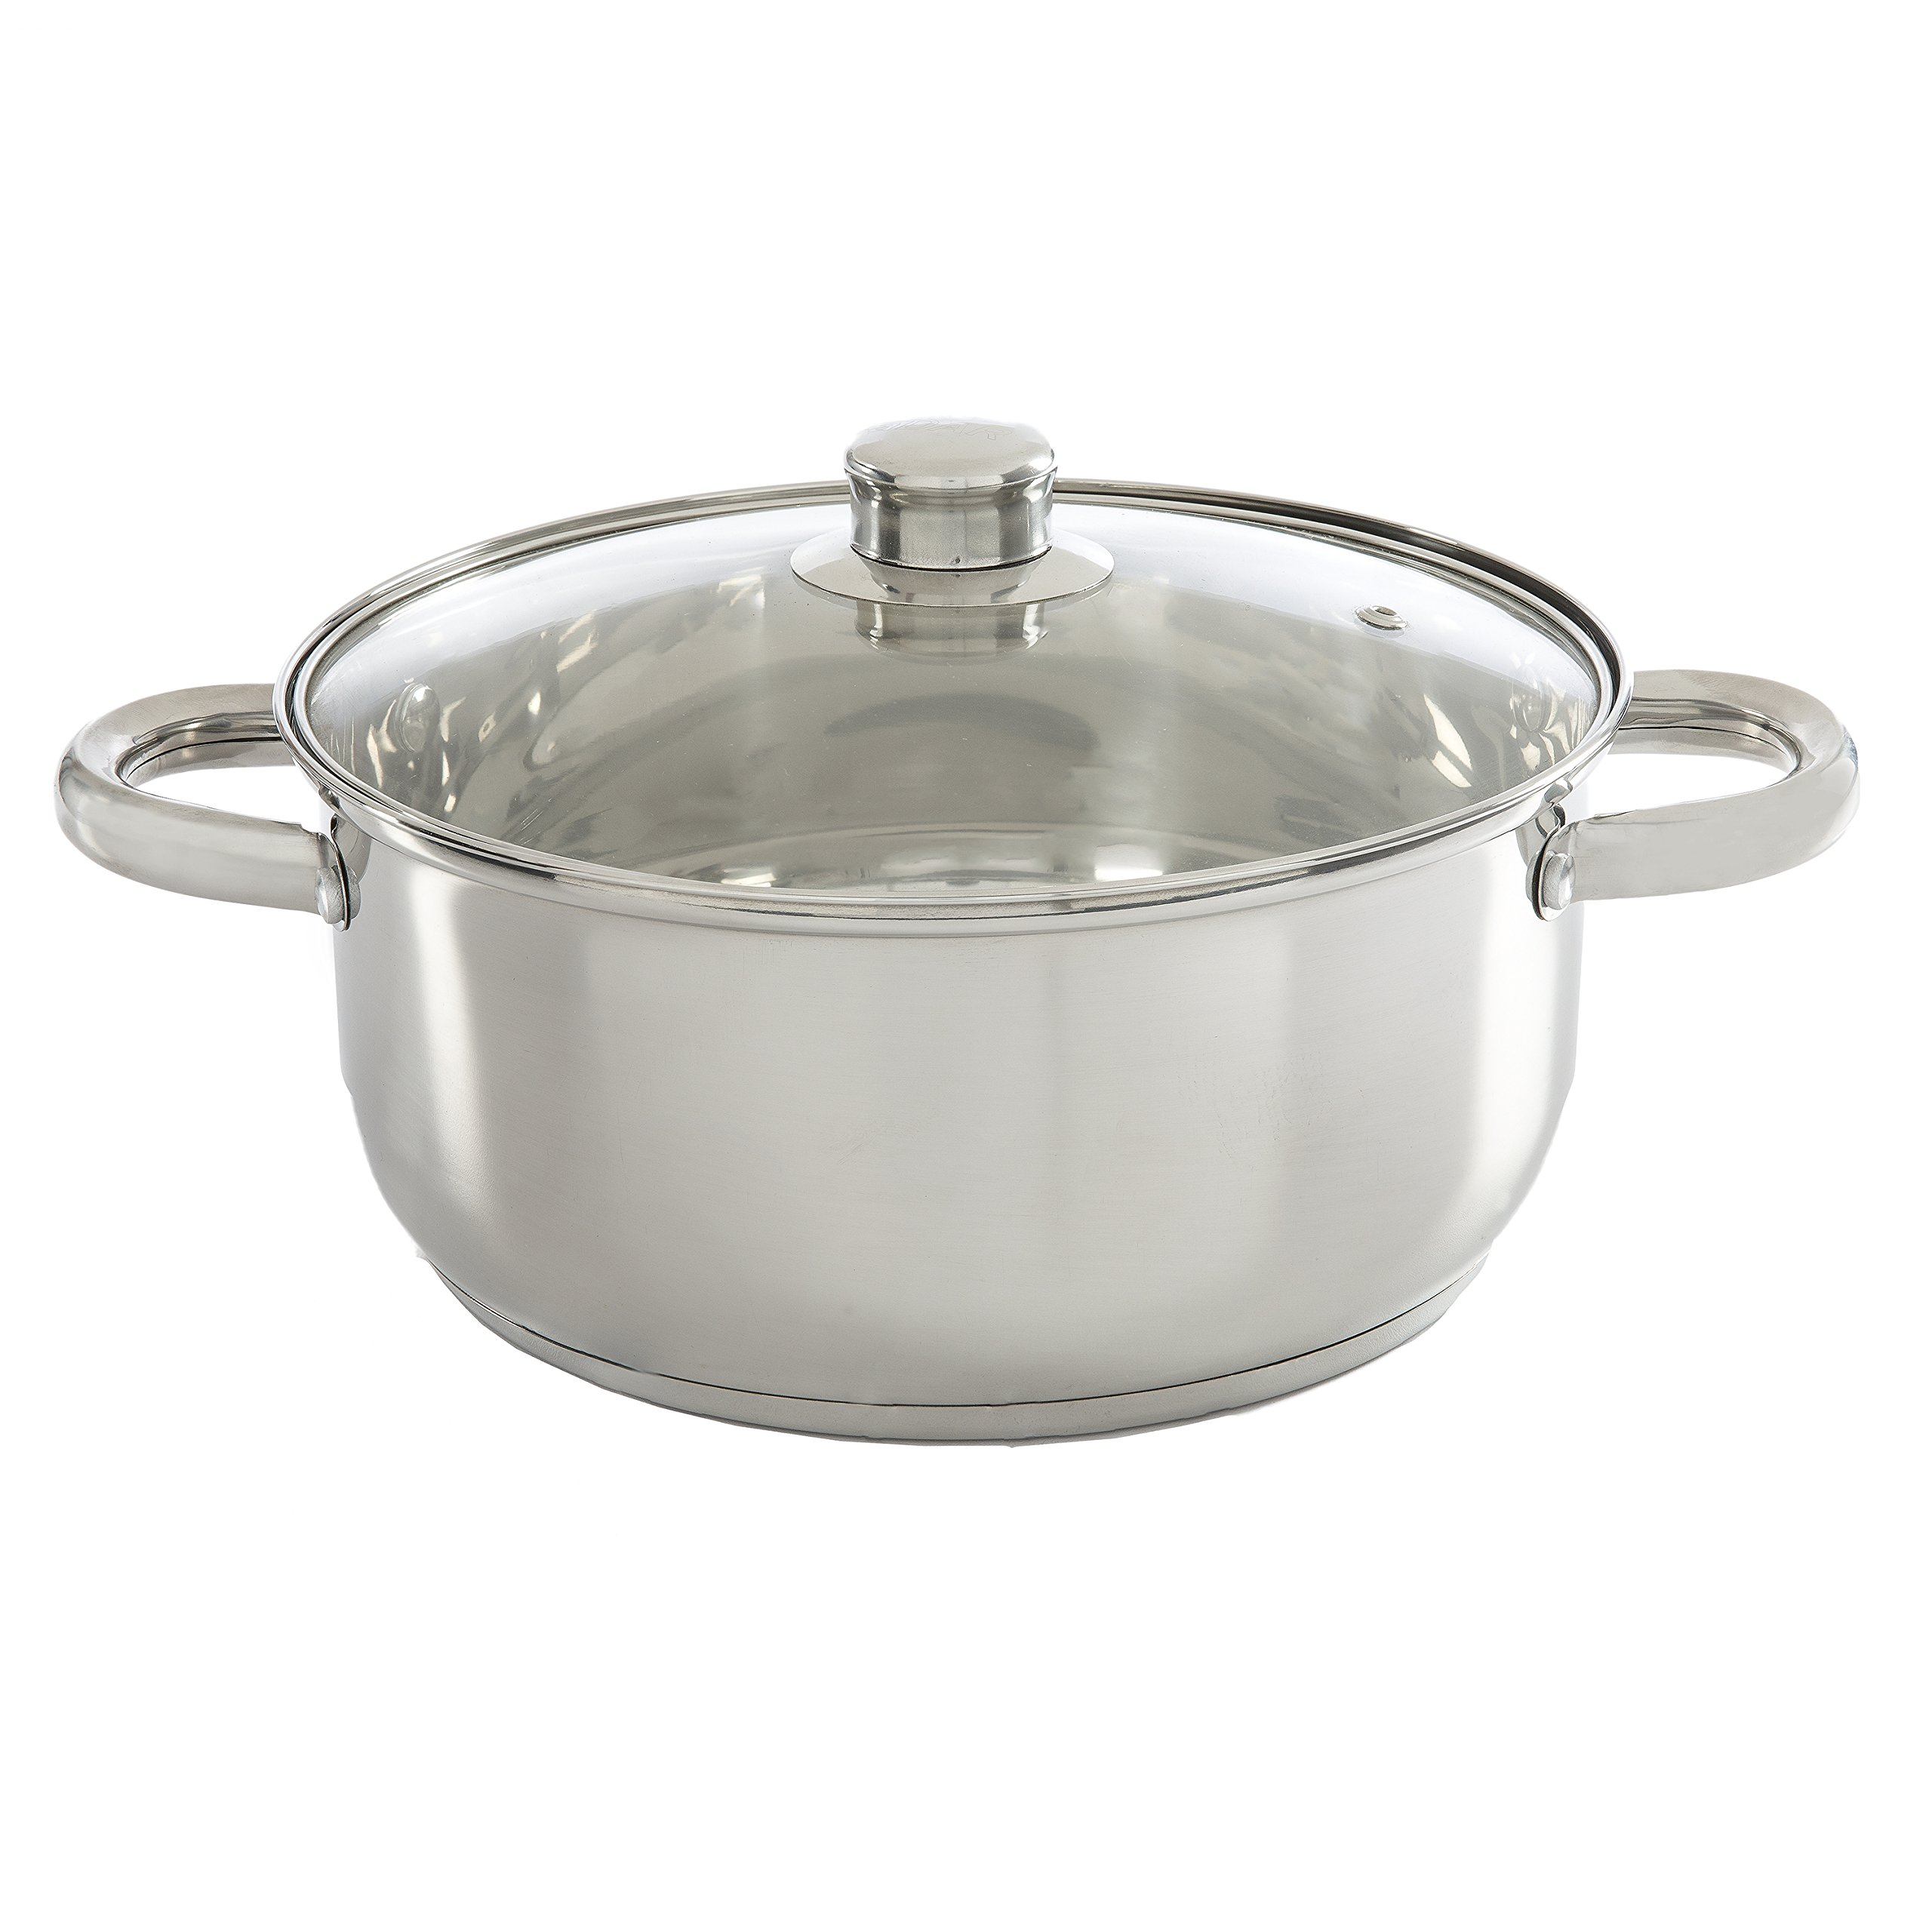 Ecolution Pure Intentions Dutch Oven 5 Quart - Vented Tempered Glass Lid - Stainless Steel